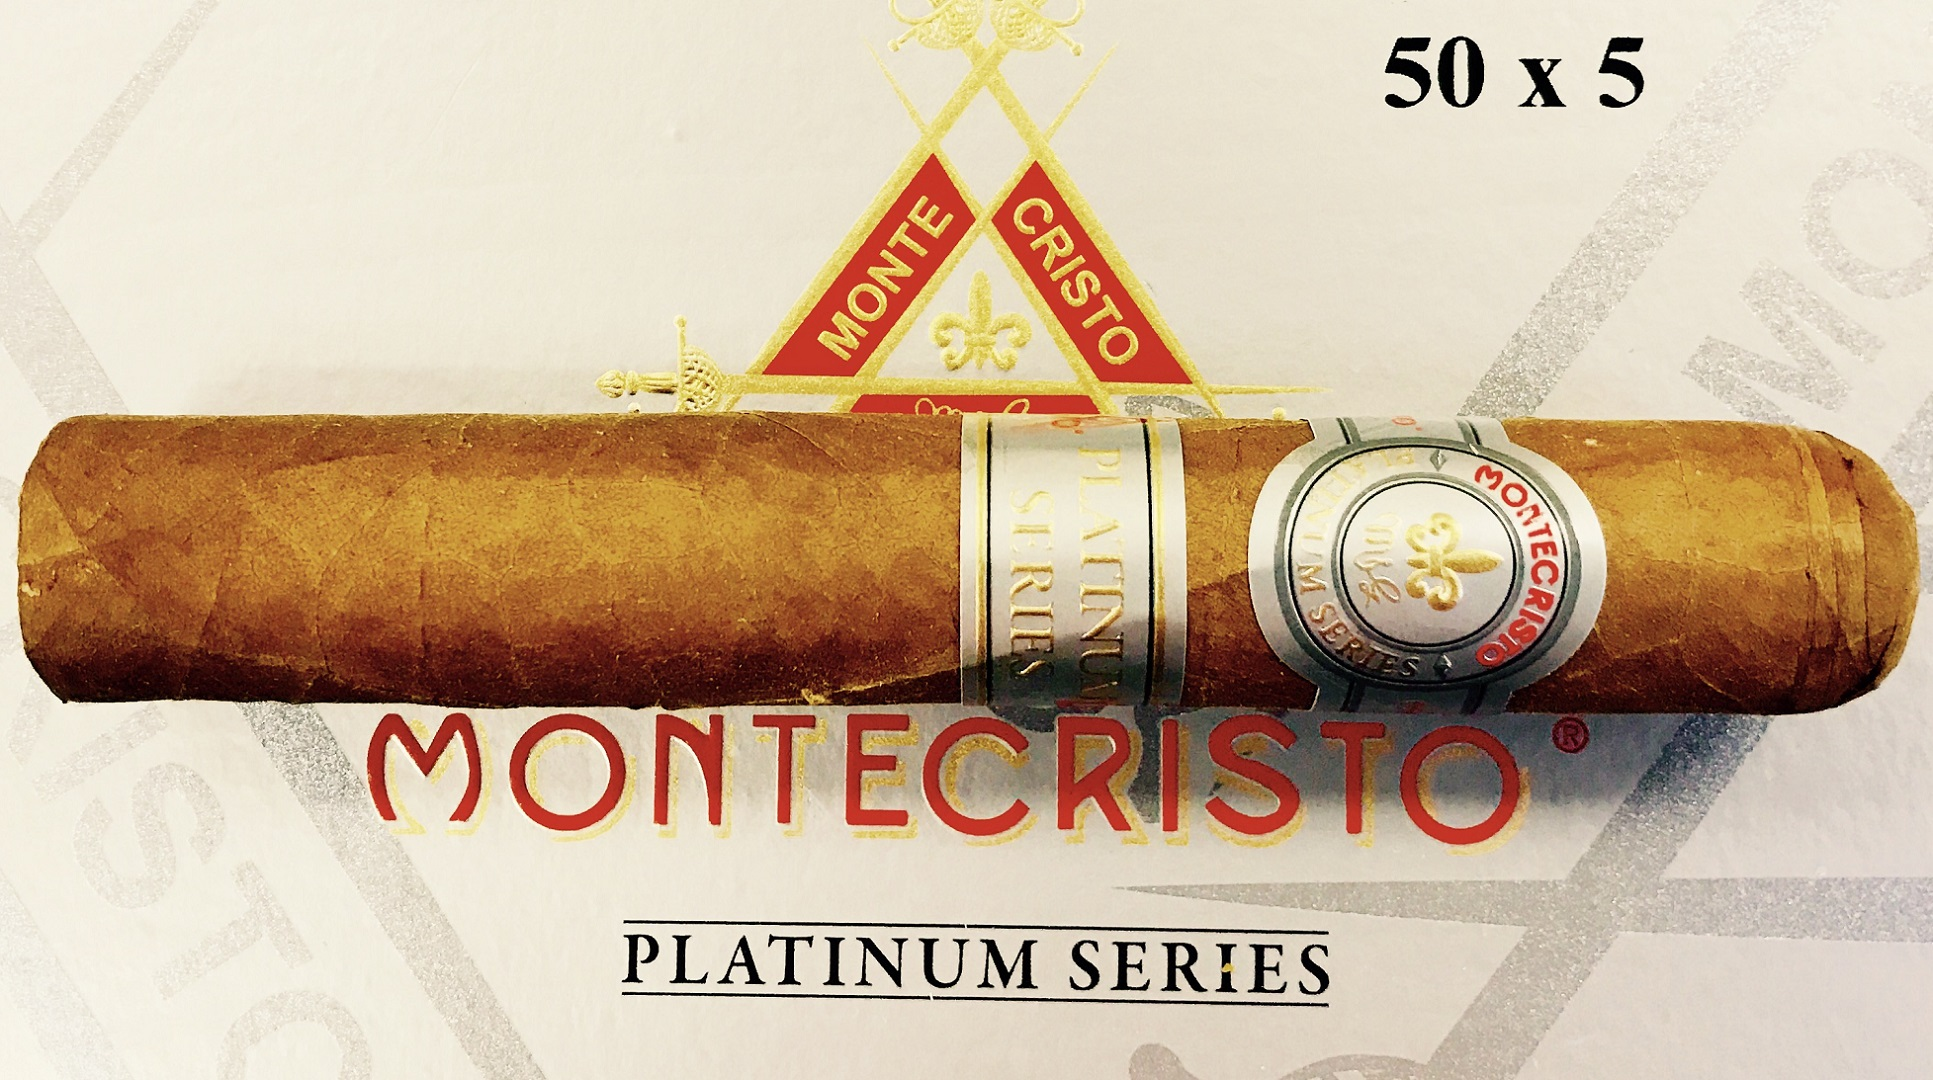 montecristo platinum cigar and box image